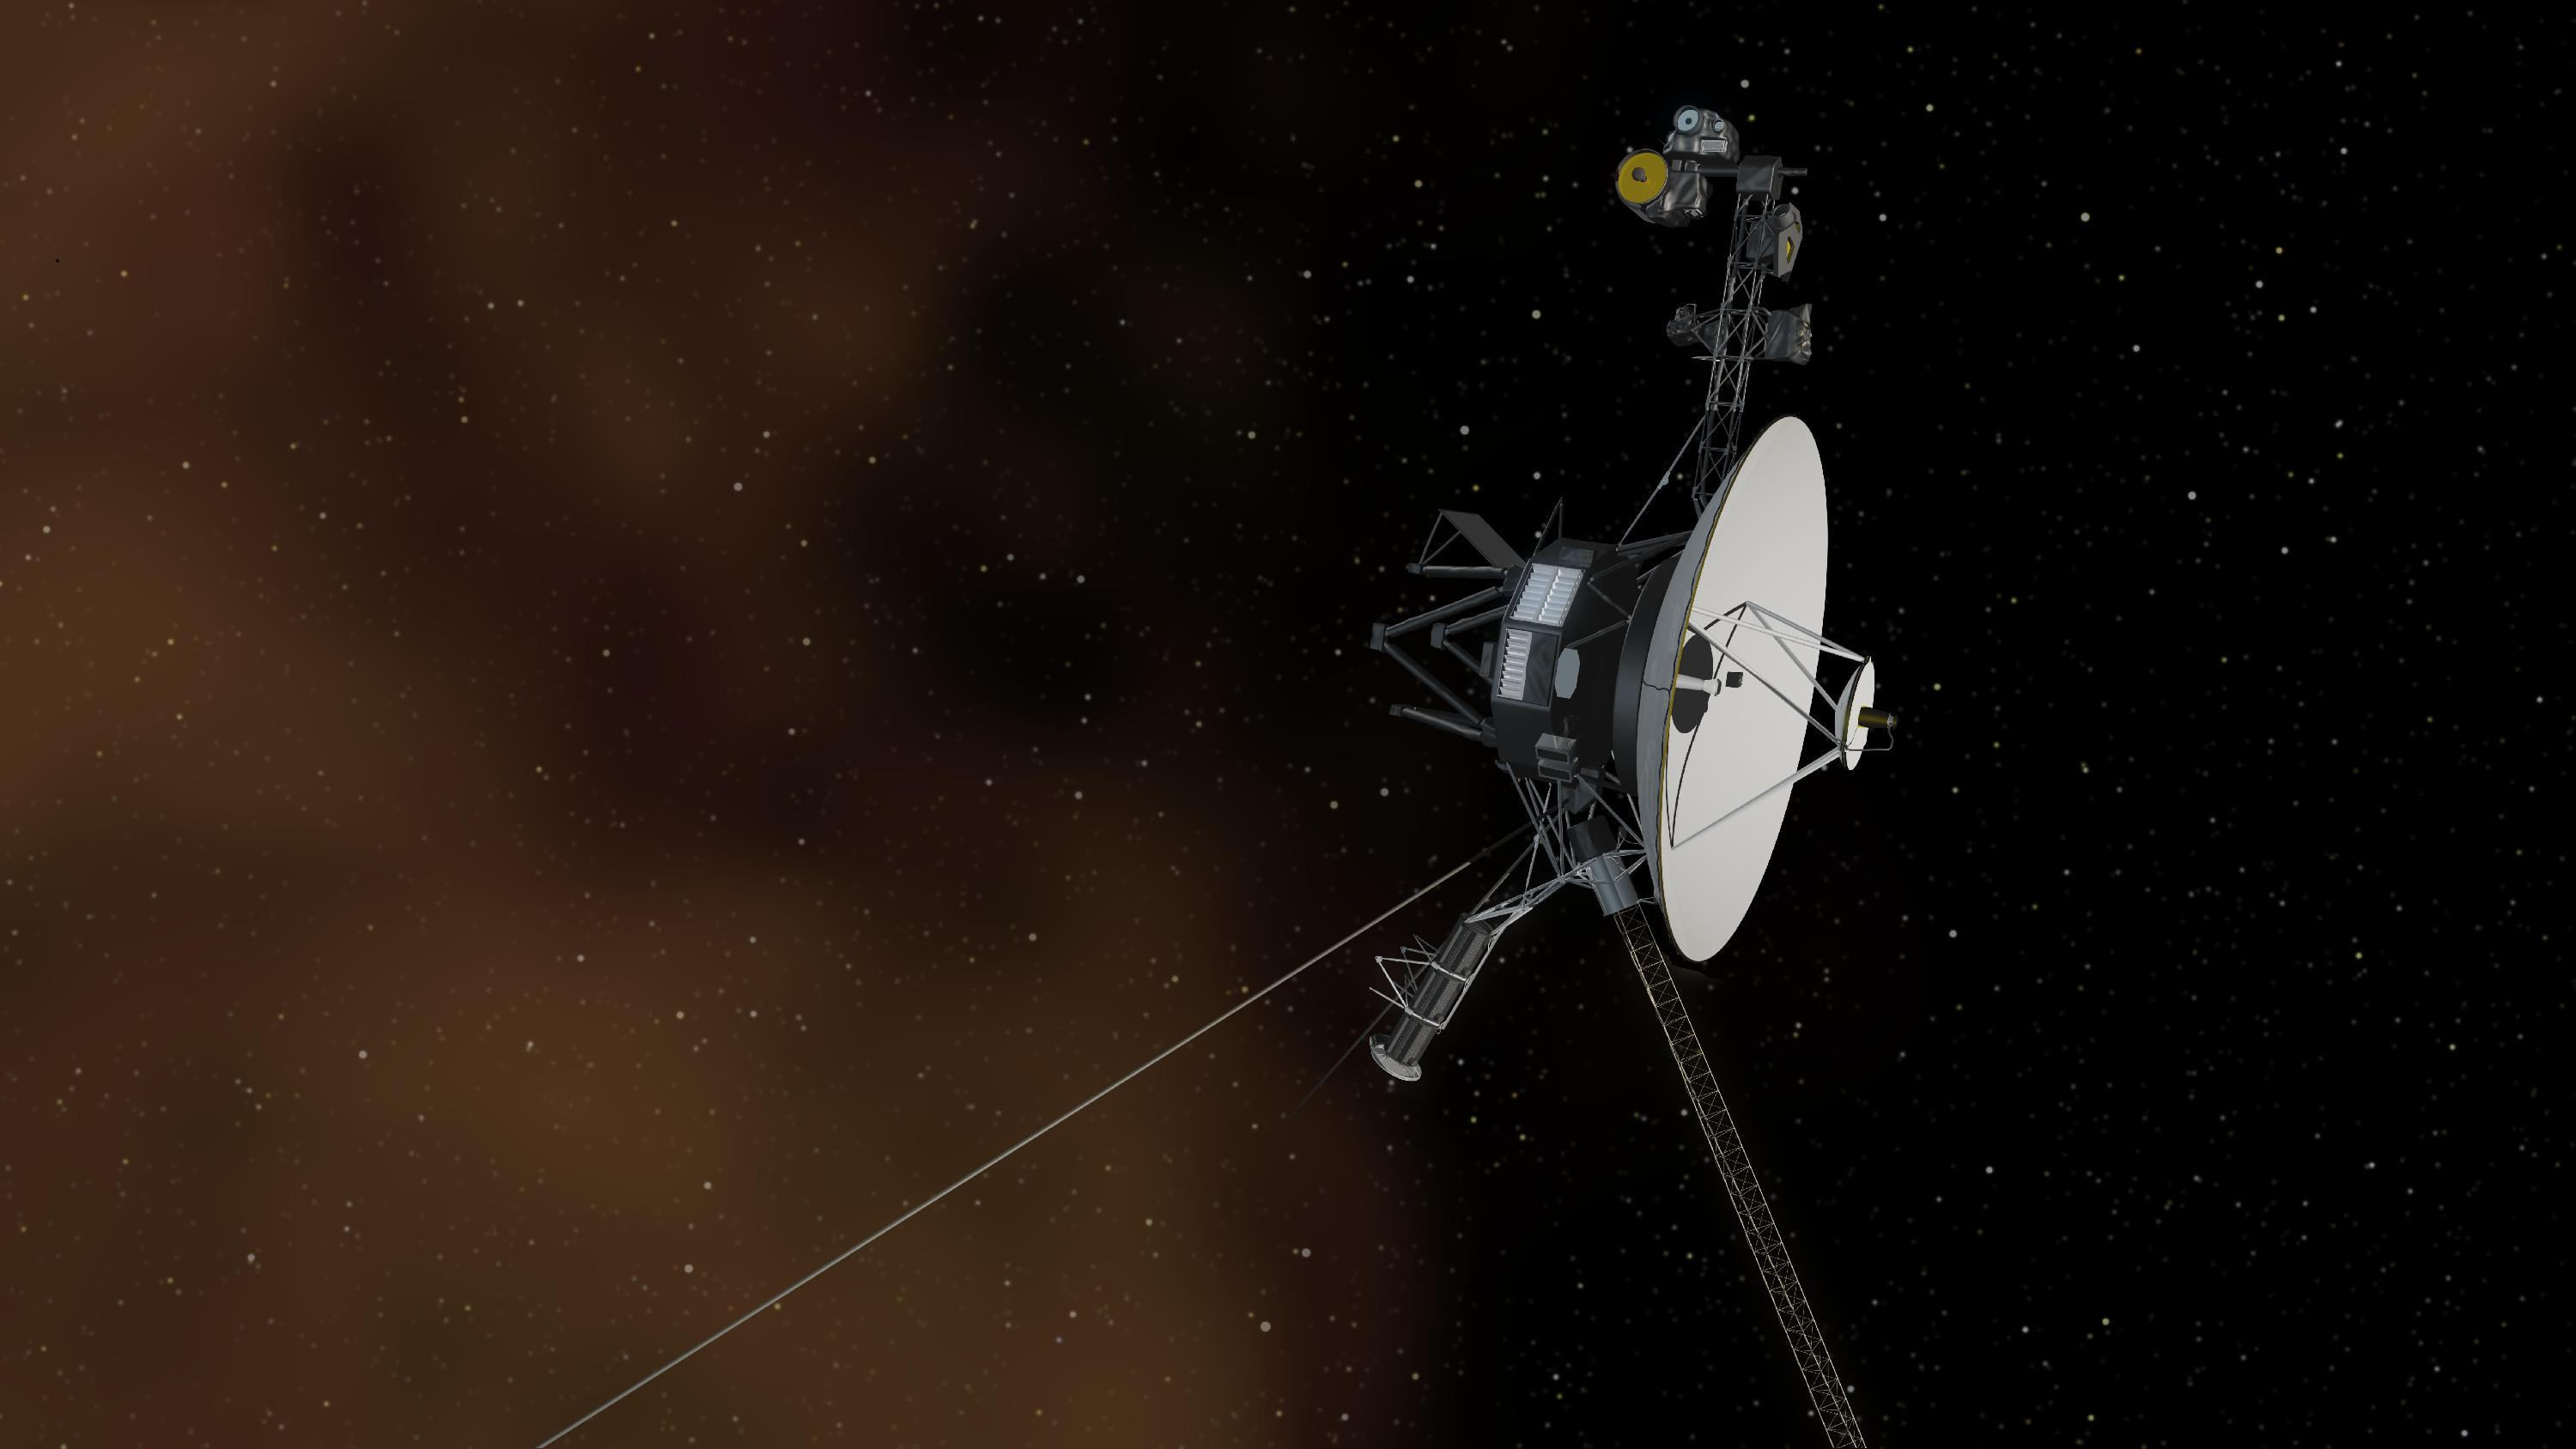 This artist's concept depicts NASA's Voyager 1 spacecraft entering interstellar space, or the space between stars. Credit: NASA/JPL-Caltech